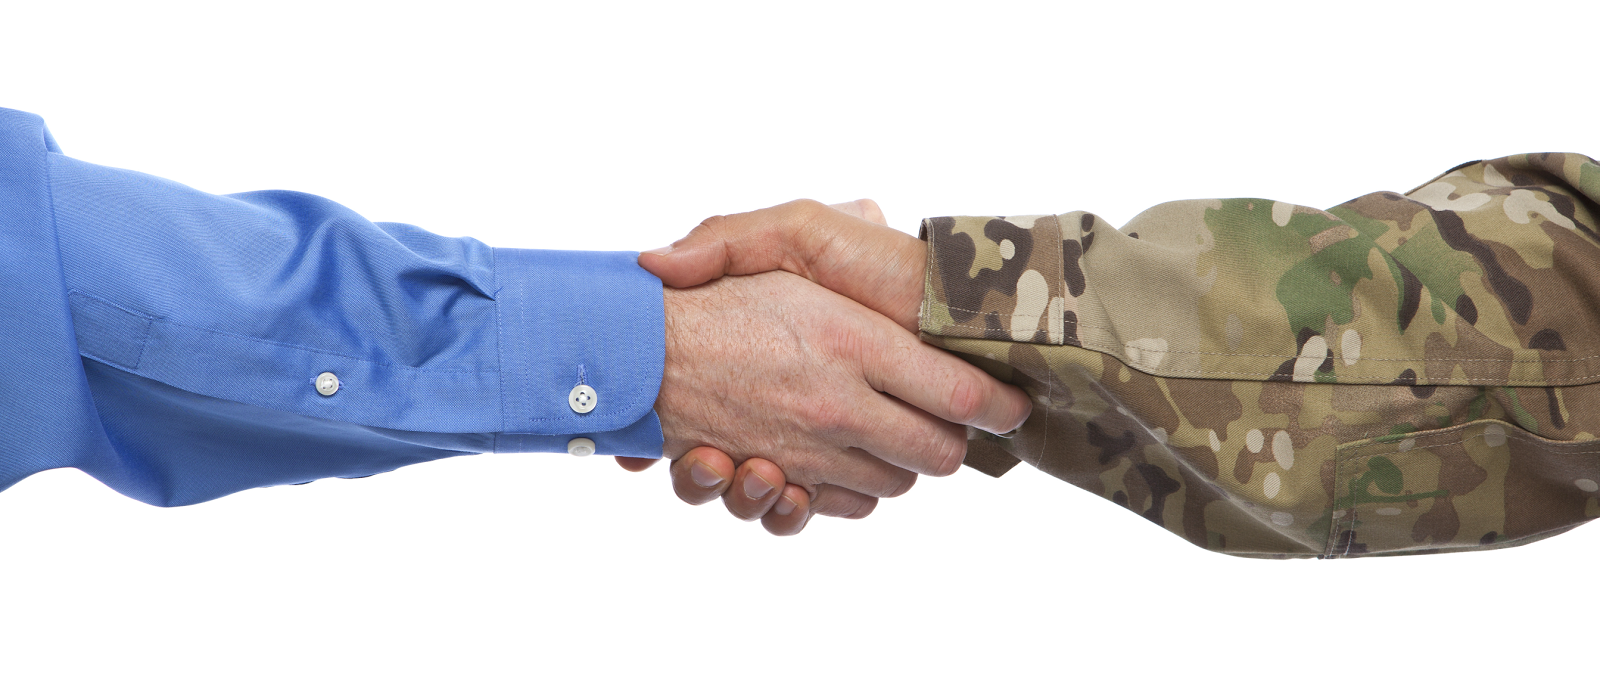 Image of arms/hands shaking, one with business attire, the other in military uniform